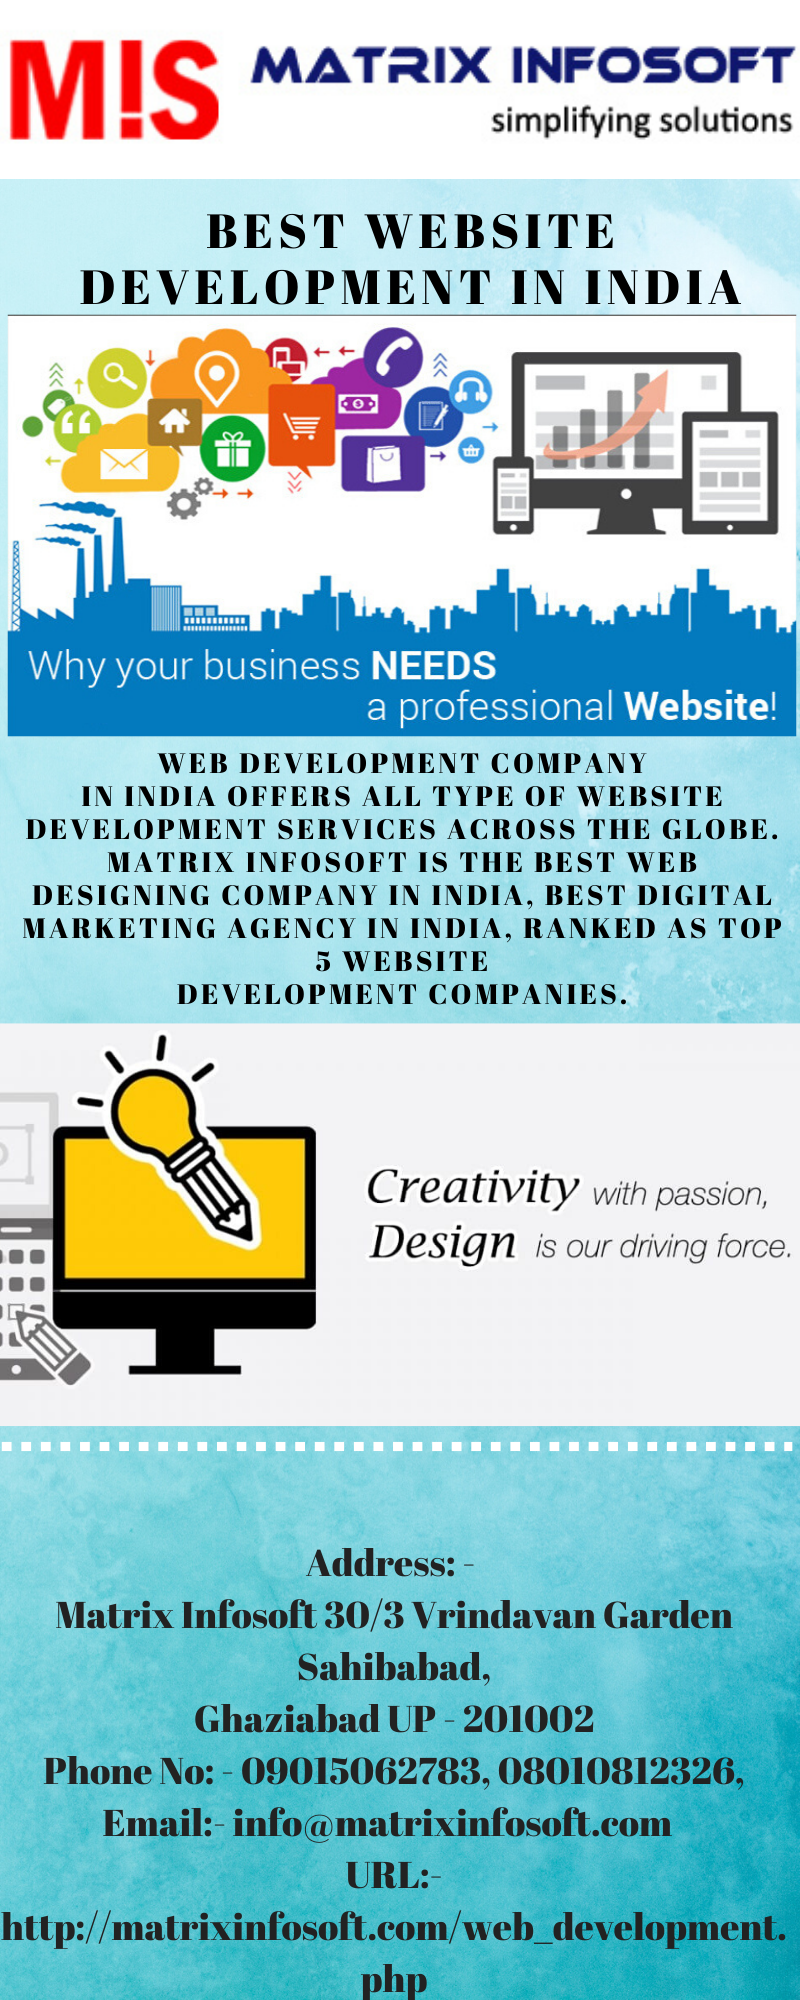 Best Website Development In India In 2020 Website Development Web Development Web Development Company